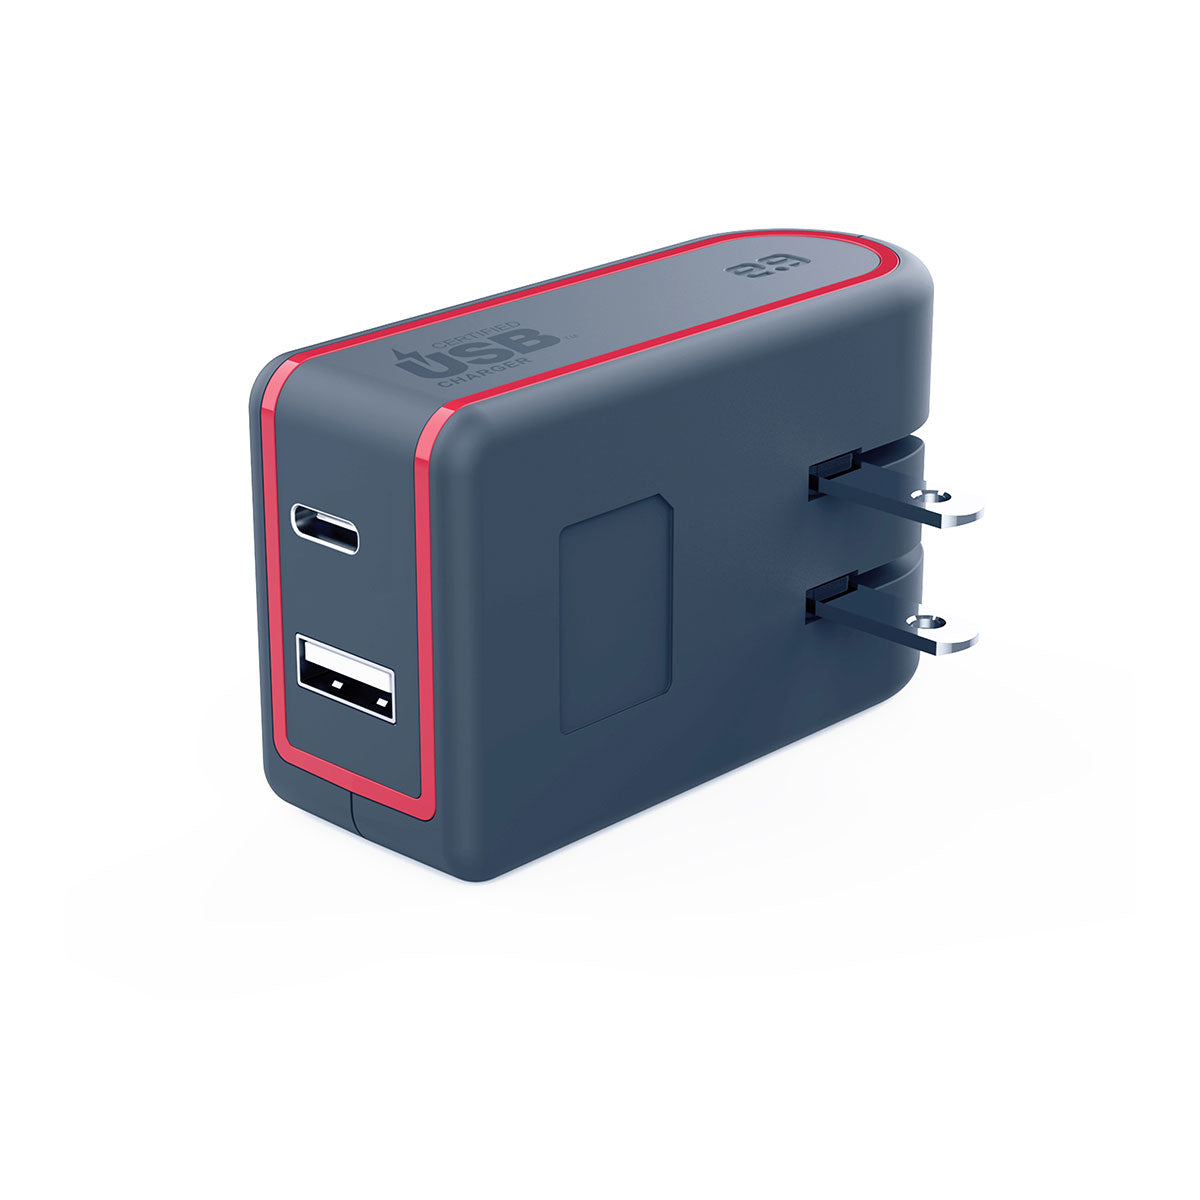 Puregear Universal 57W Dual USB A+PD 2.0 Wall Charger - Gray/Red